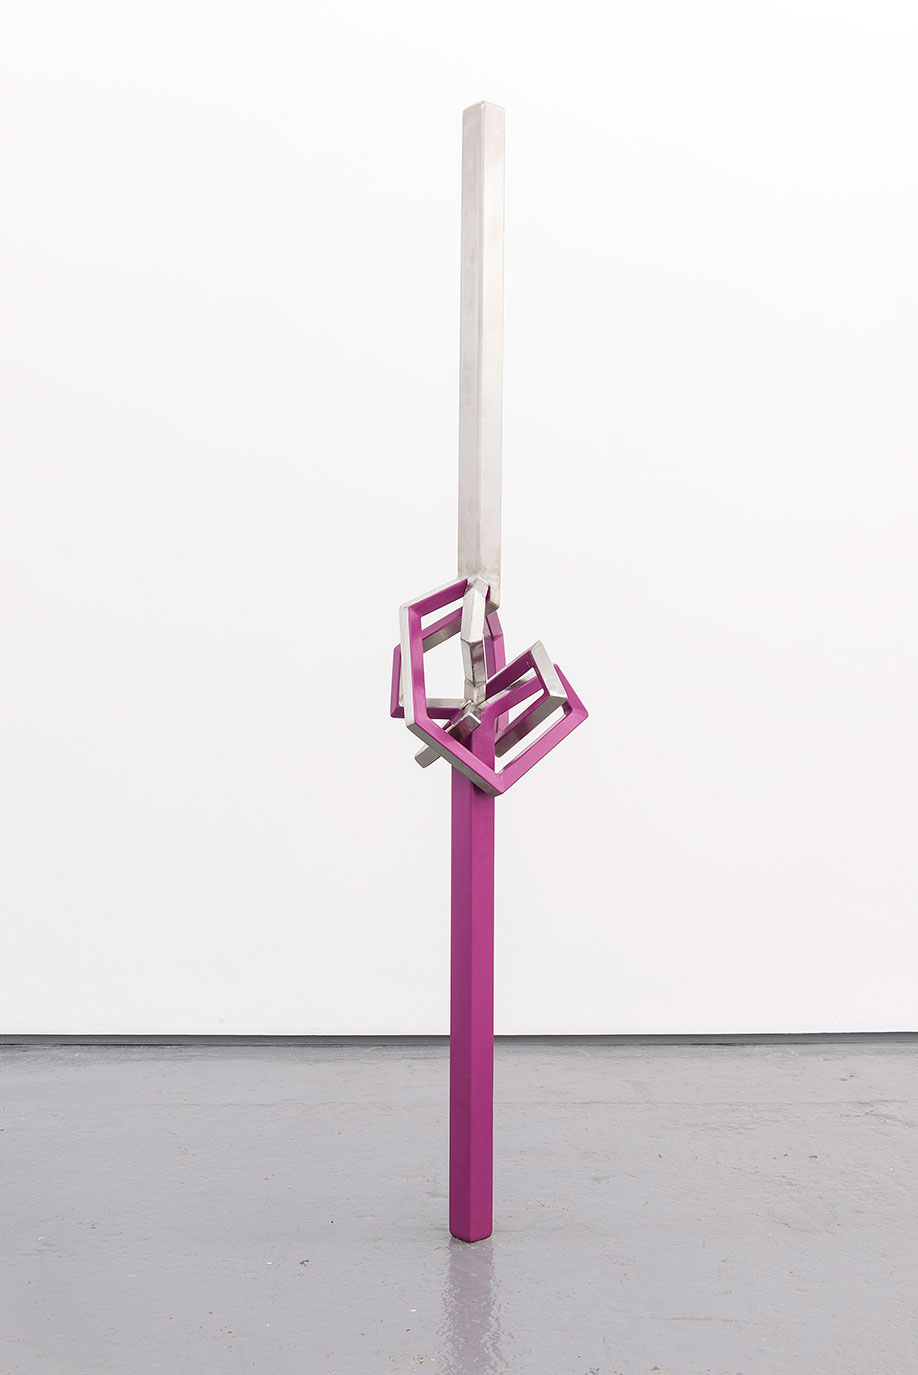 <b>Title:&nbsp;</b>Himalayan Balsam<br /><b>Year:&nbsp;</b>2013<br /><b>Medium:&nbsp;</b>Powder-coated stainless steel<br /><b>Size:&nbsp;</b>145 x 27 x 18 cm